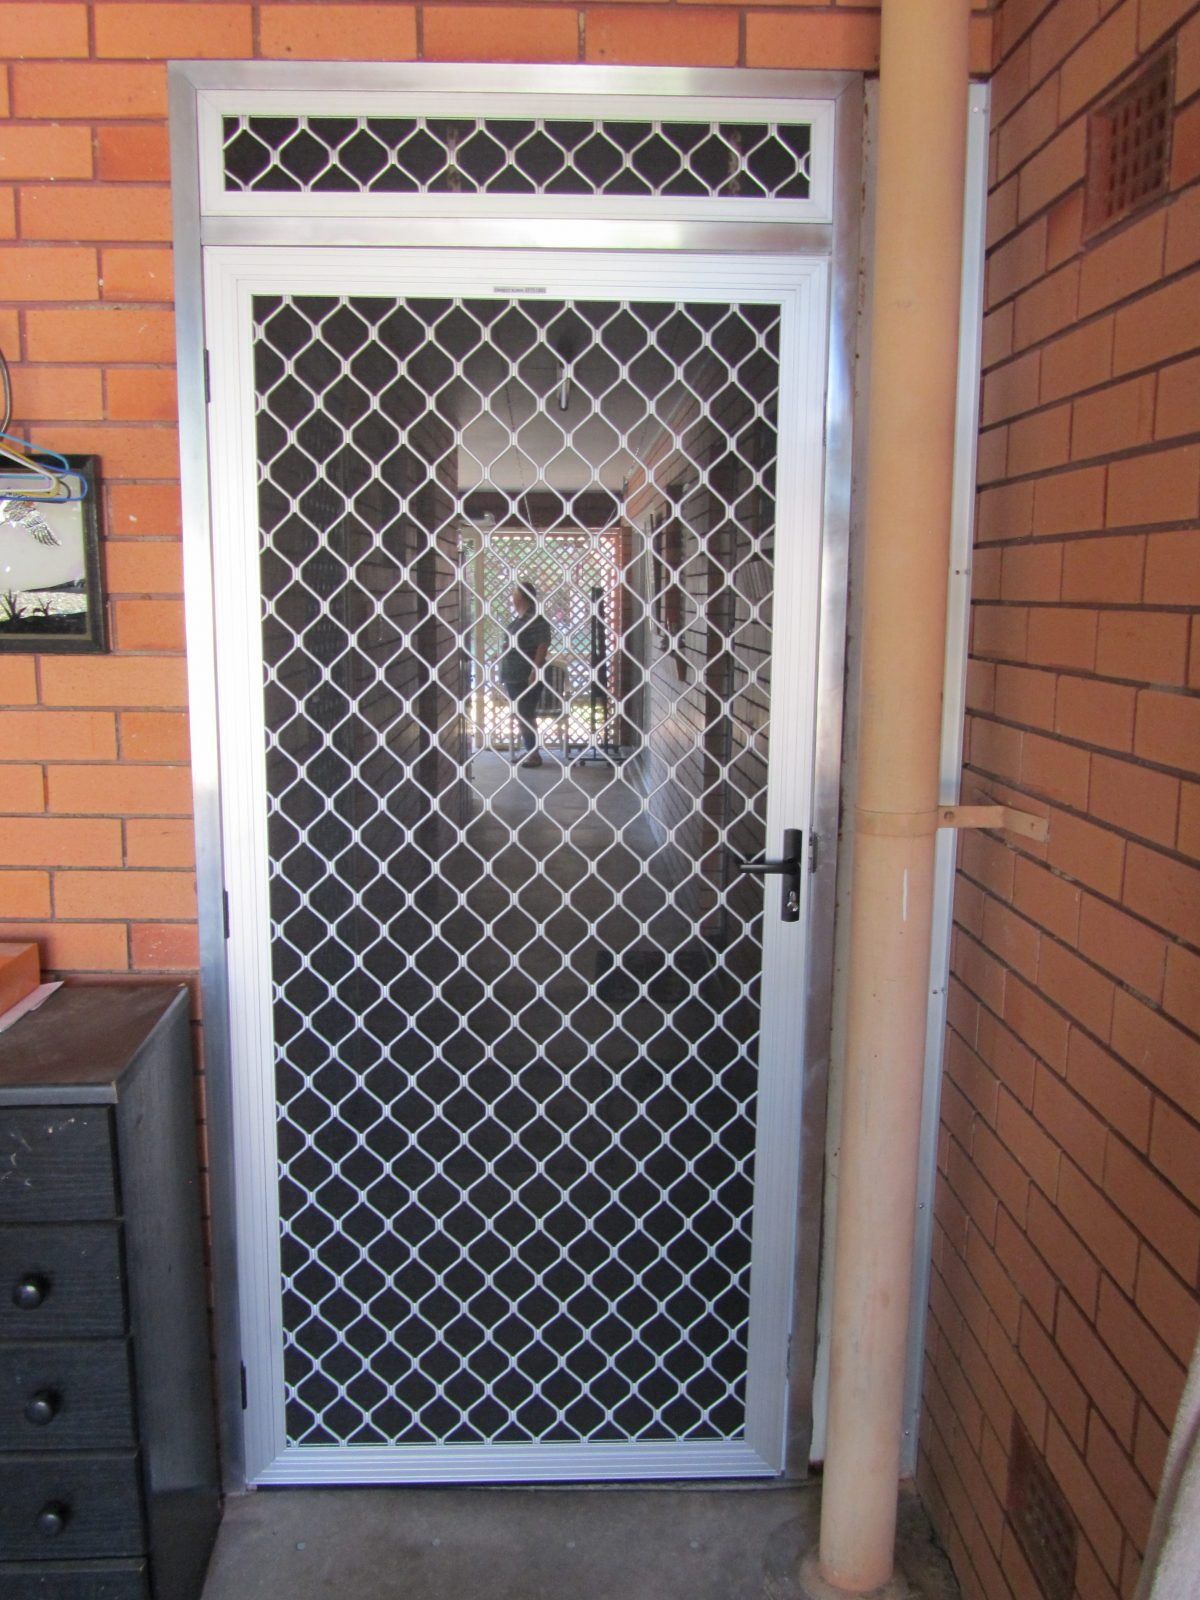 Security Doors and Screens & Rollaway Pleated Screens ...